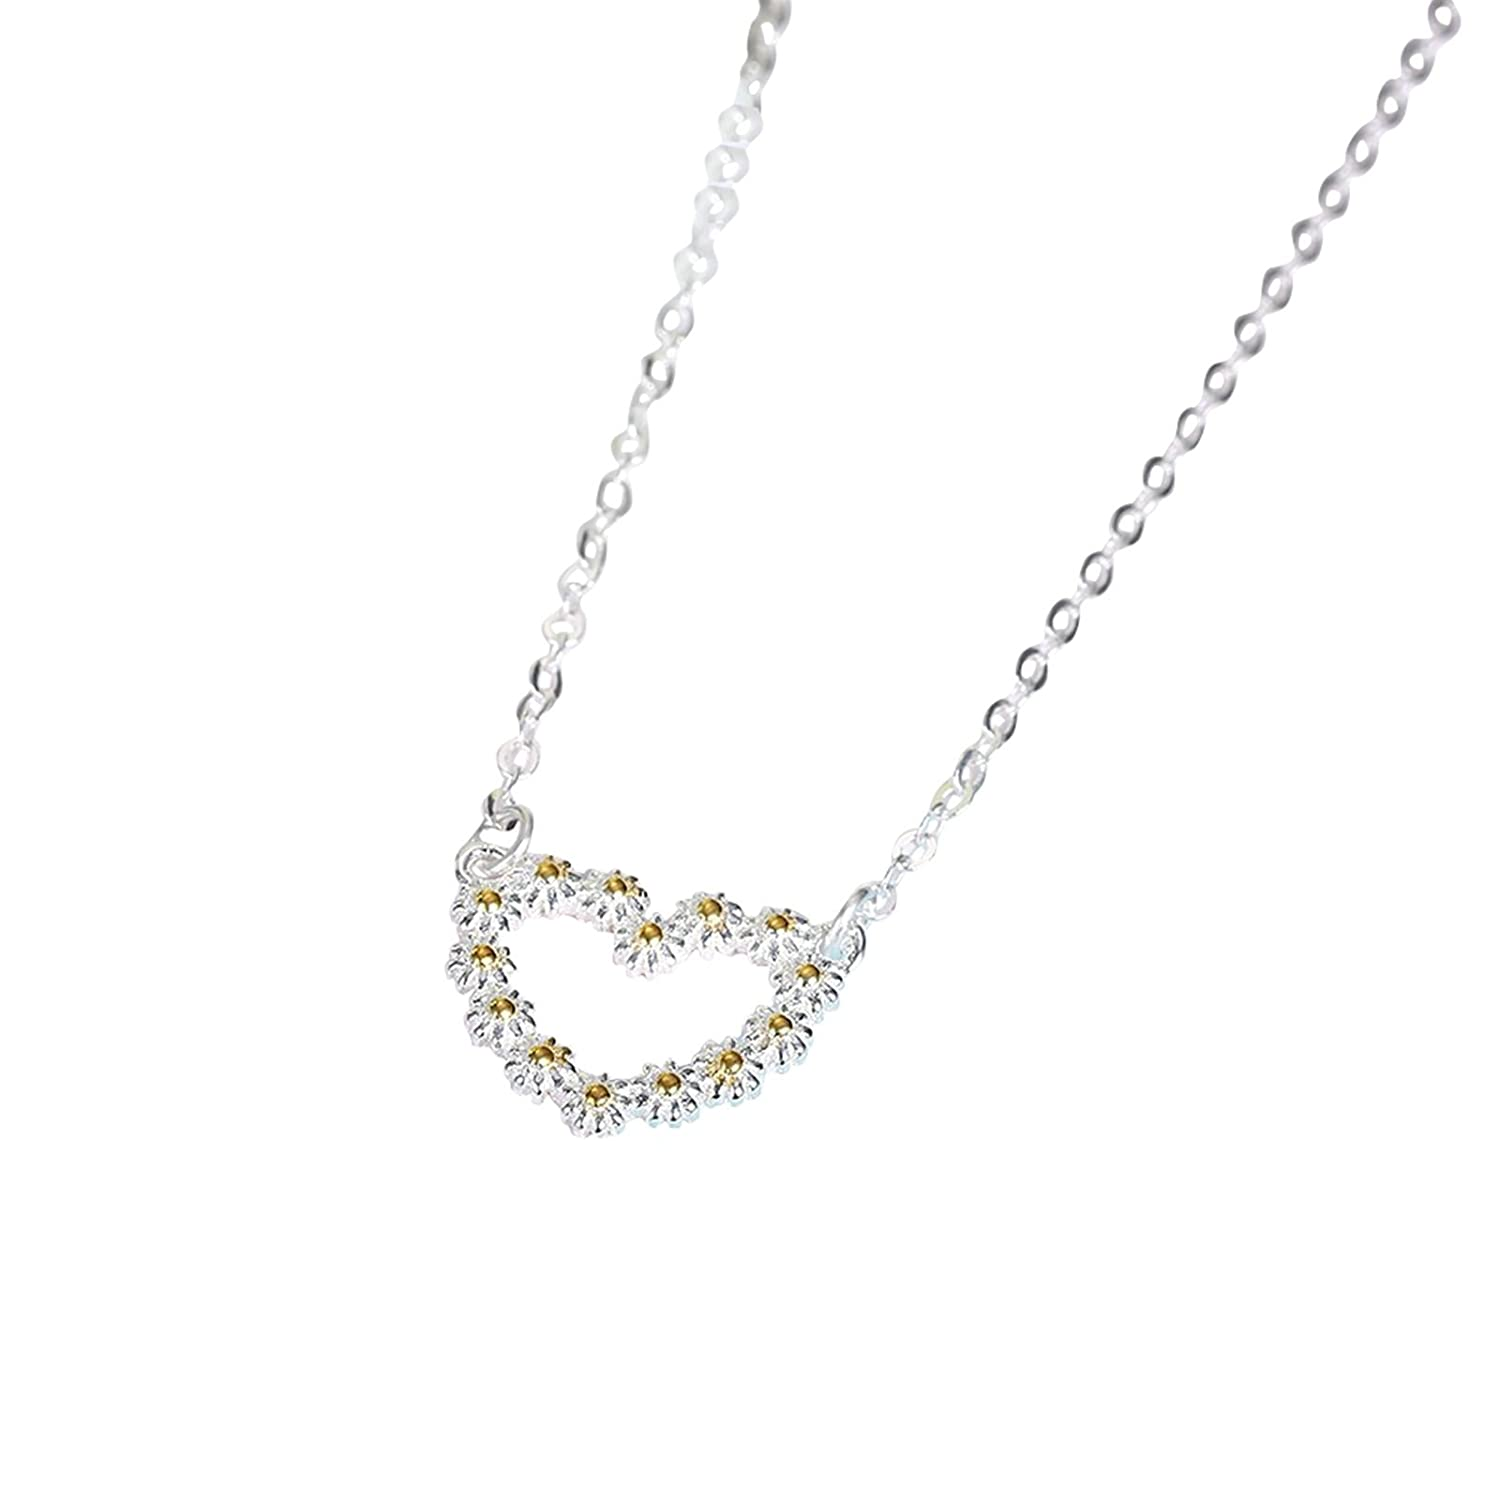 40+5 cm Aokarry S925 Silver Necklace for Women Flower Heart Silver Chain Length